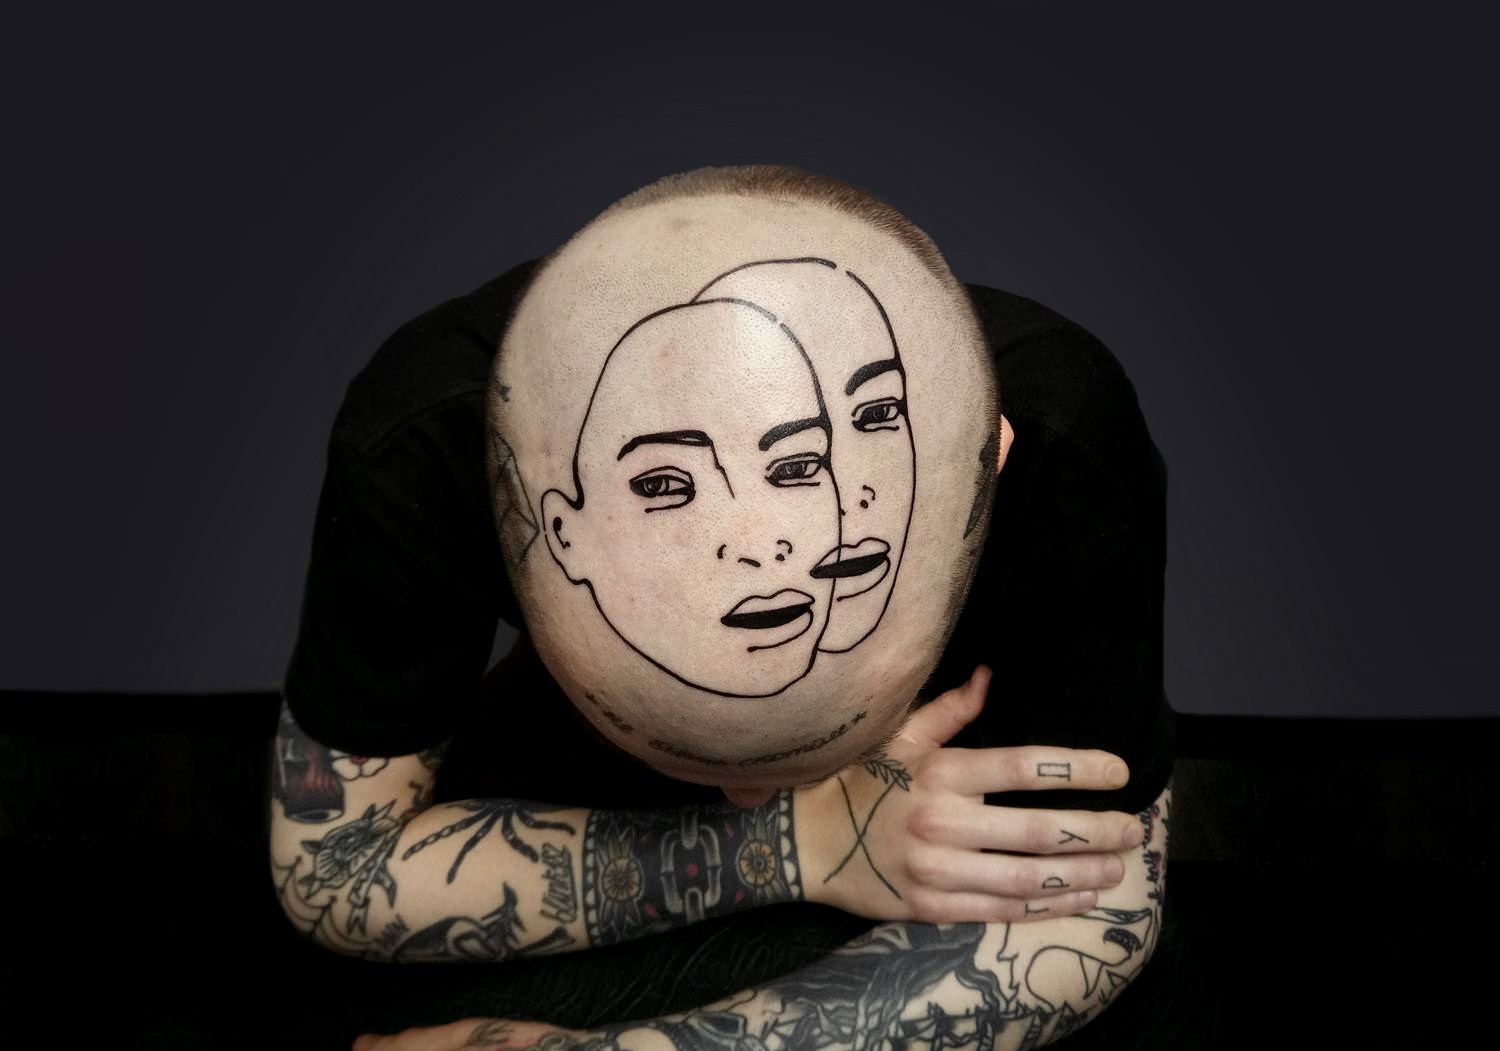 Double face tattoo on head by Andrey Volkov